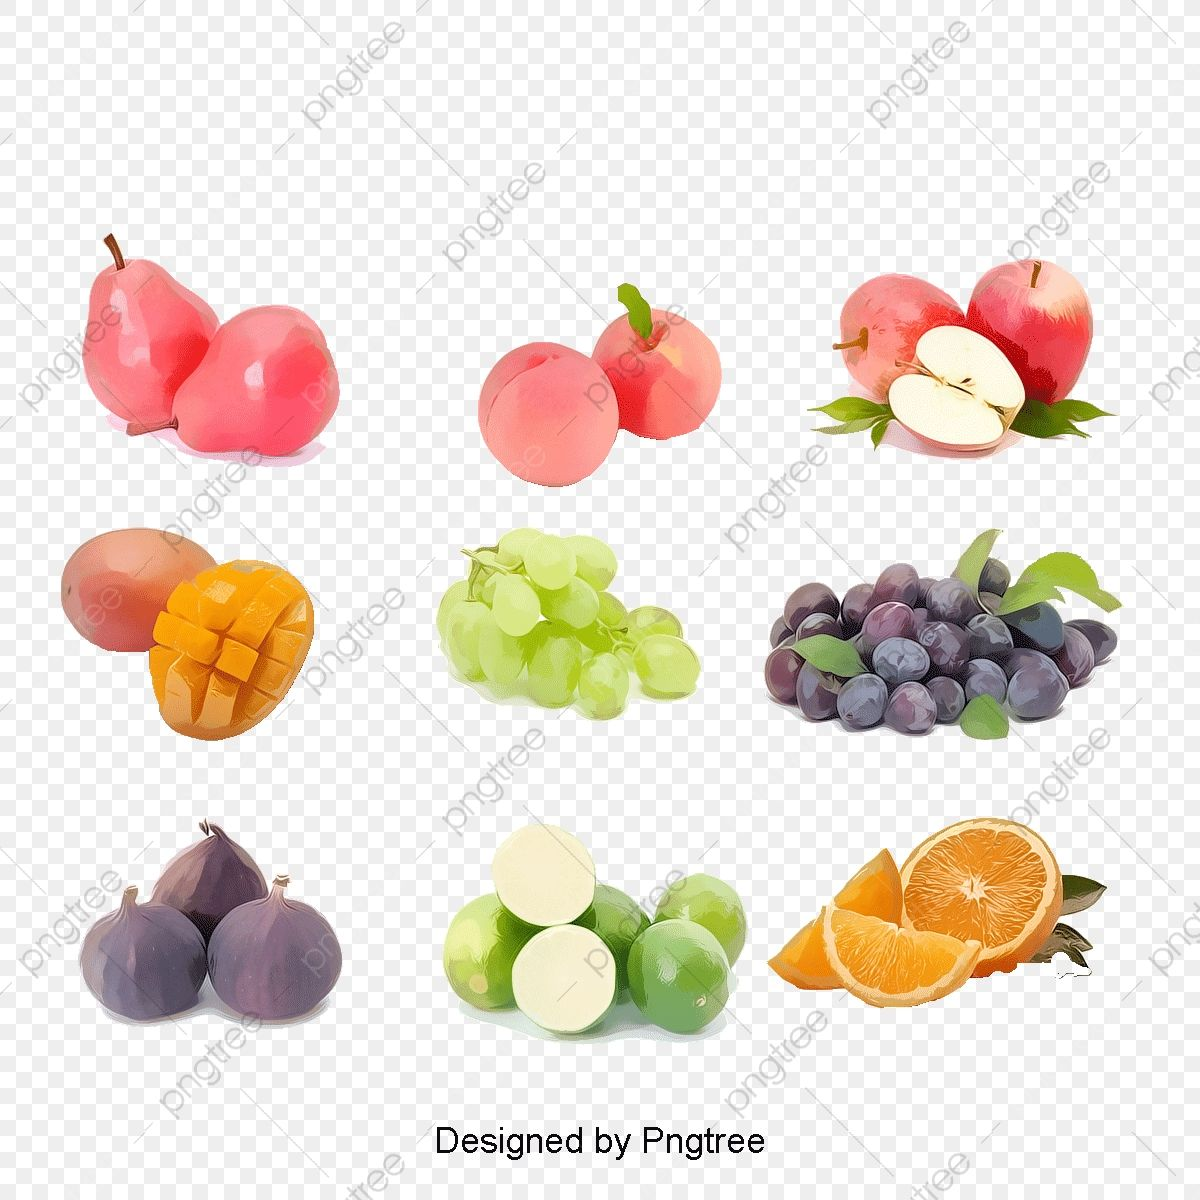 Fruit Fruit Clipart Fruit Pictures Hd Png Transparent Clipart Image And Psd File For Free Download Fruit Clipart Fruit Picture Clip Art